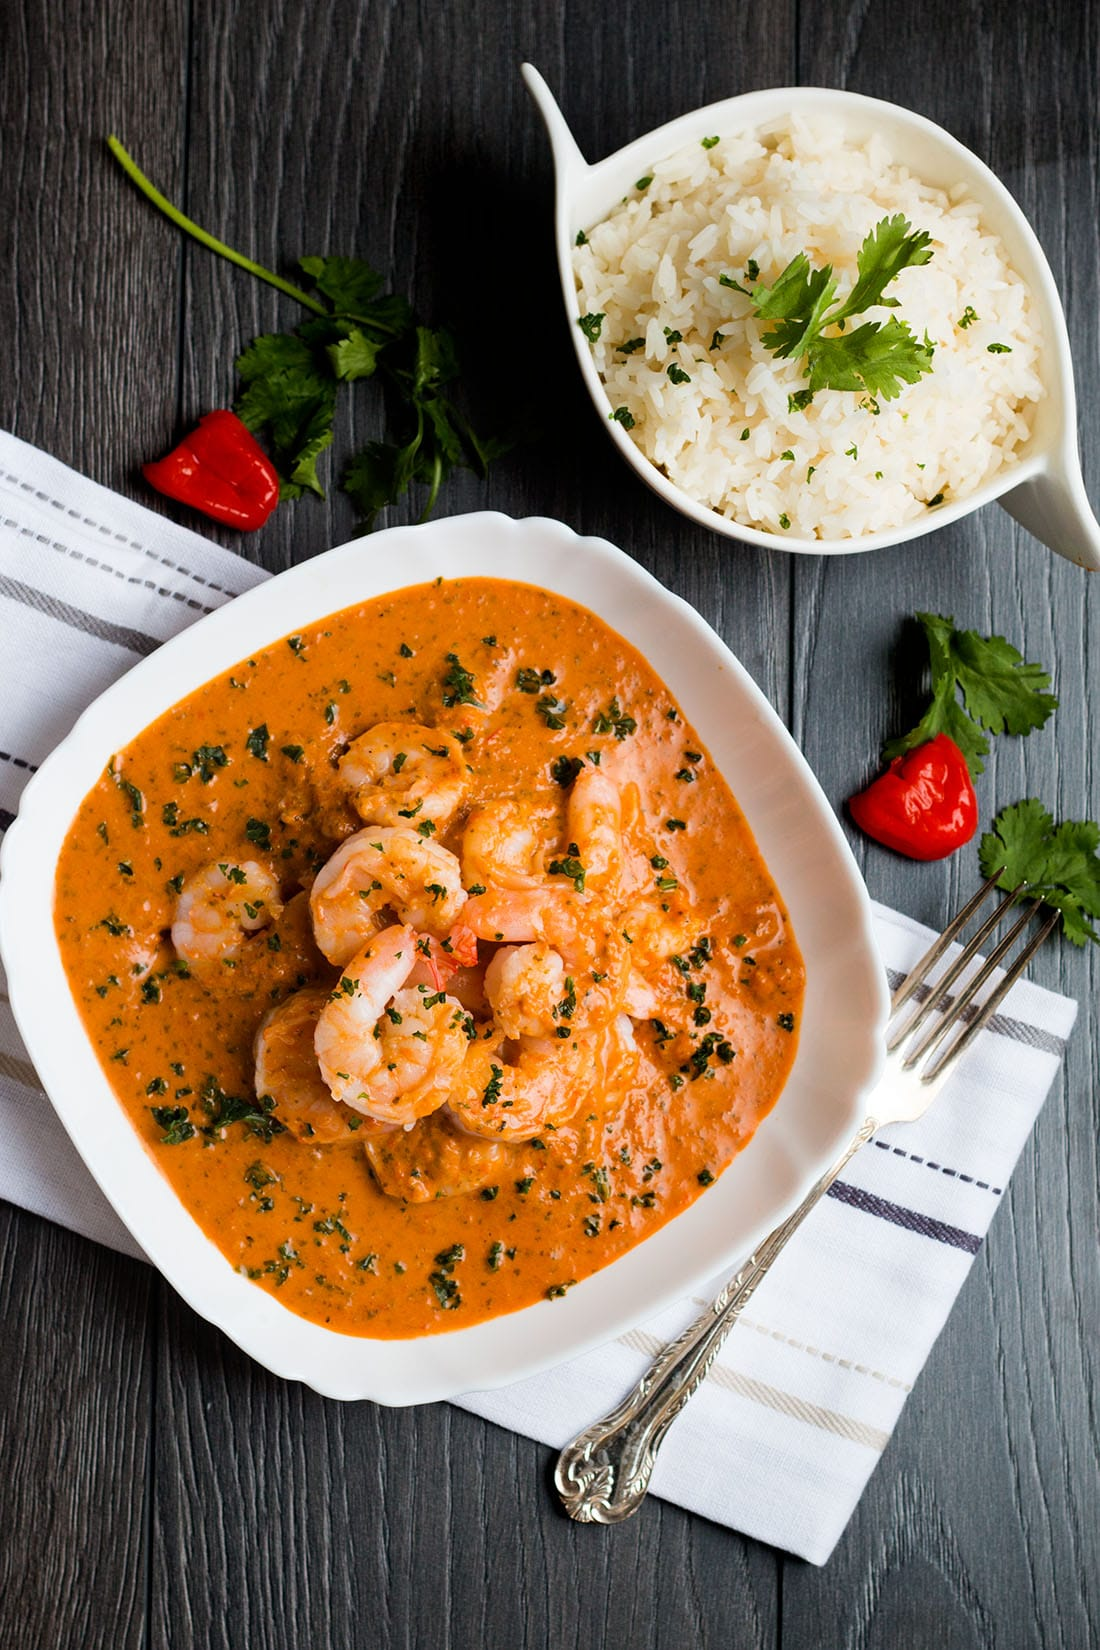 This recipe for Quick and Easy Thai Red Curry from Erren's Kitchen makes a simple, fragrant, and zingy curry that the whole family will enjoy.